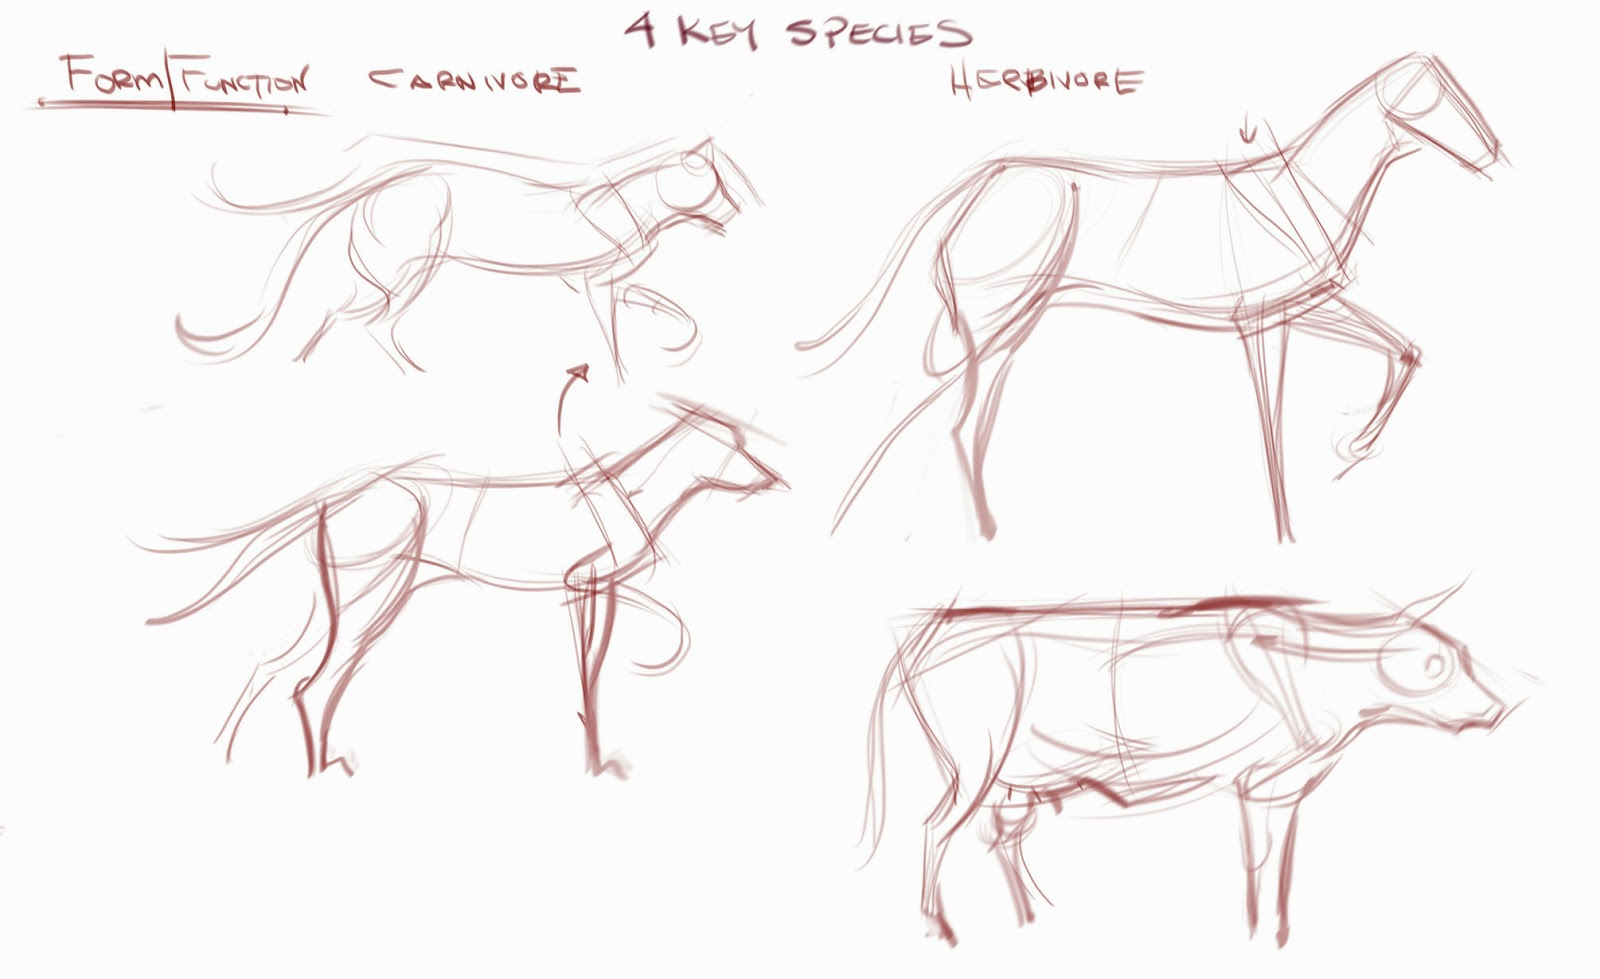 figuredrawing.info news: Comparative Anatomy - Thoughts on Analyzing ...